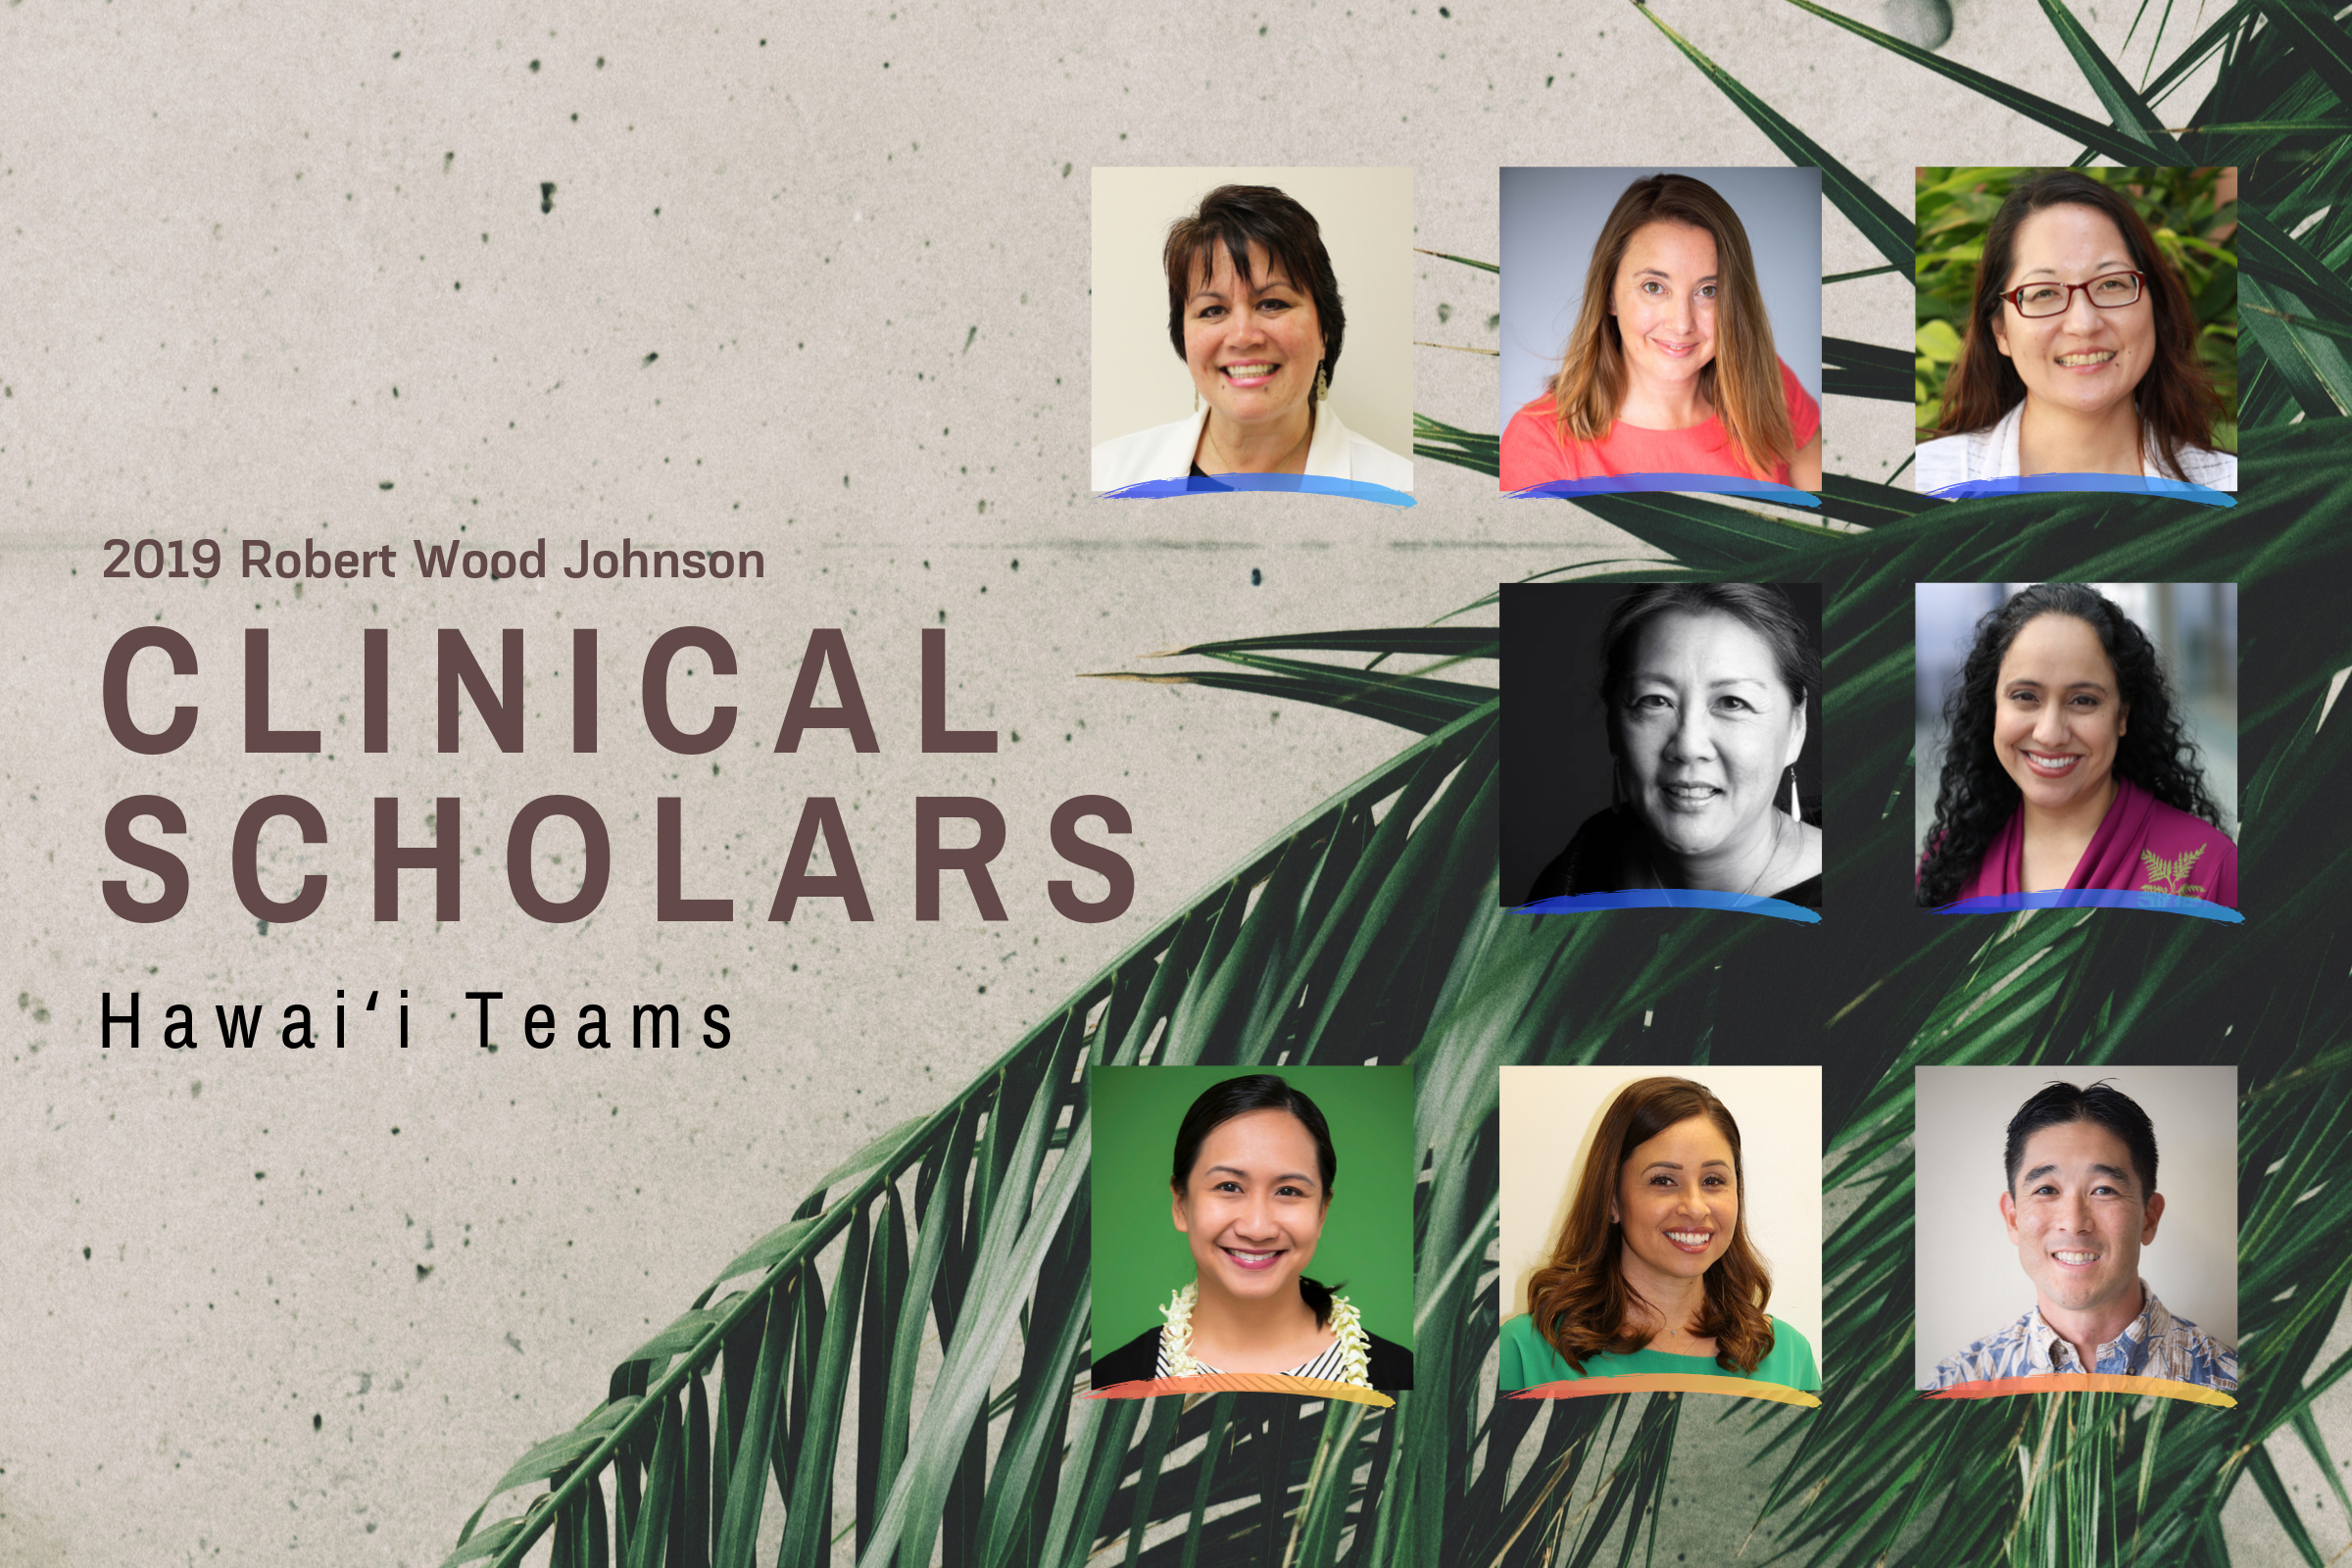 portraits of all clinical scholars